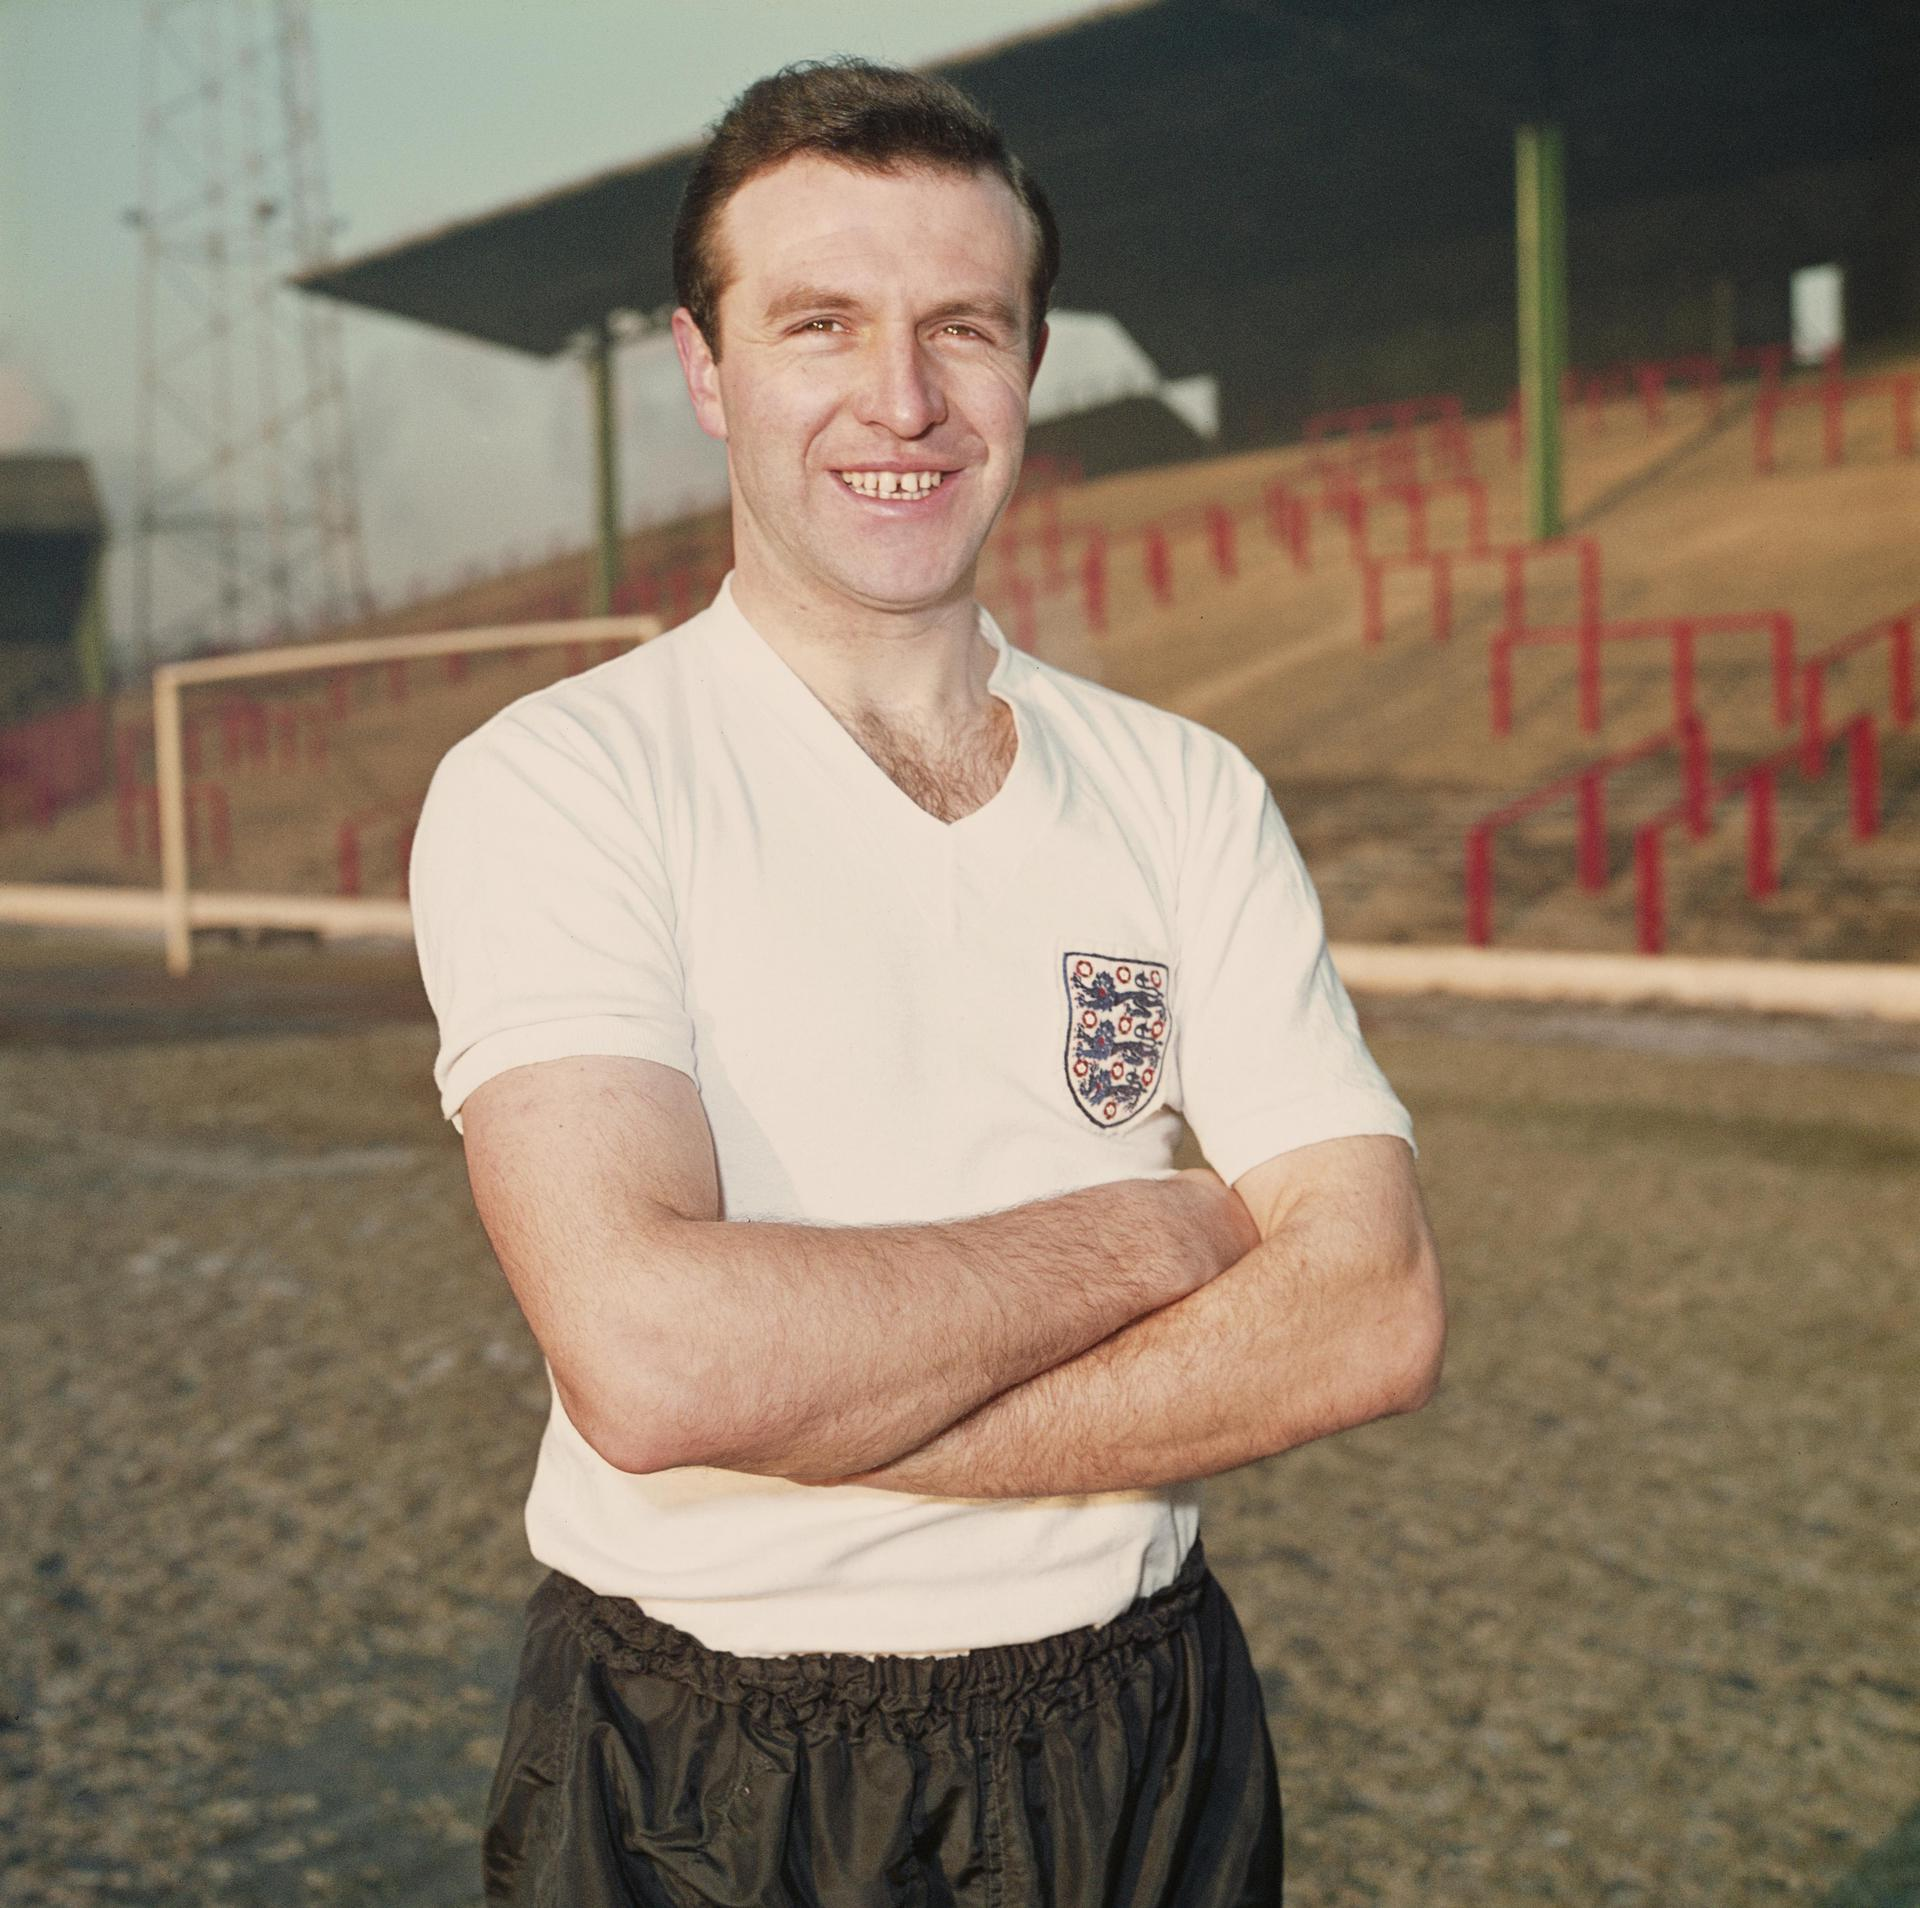 Jimmy Armfield posing in his England kit.